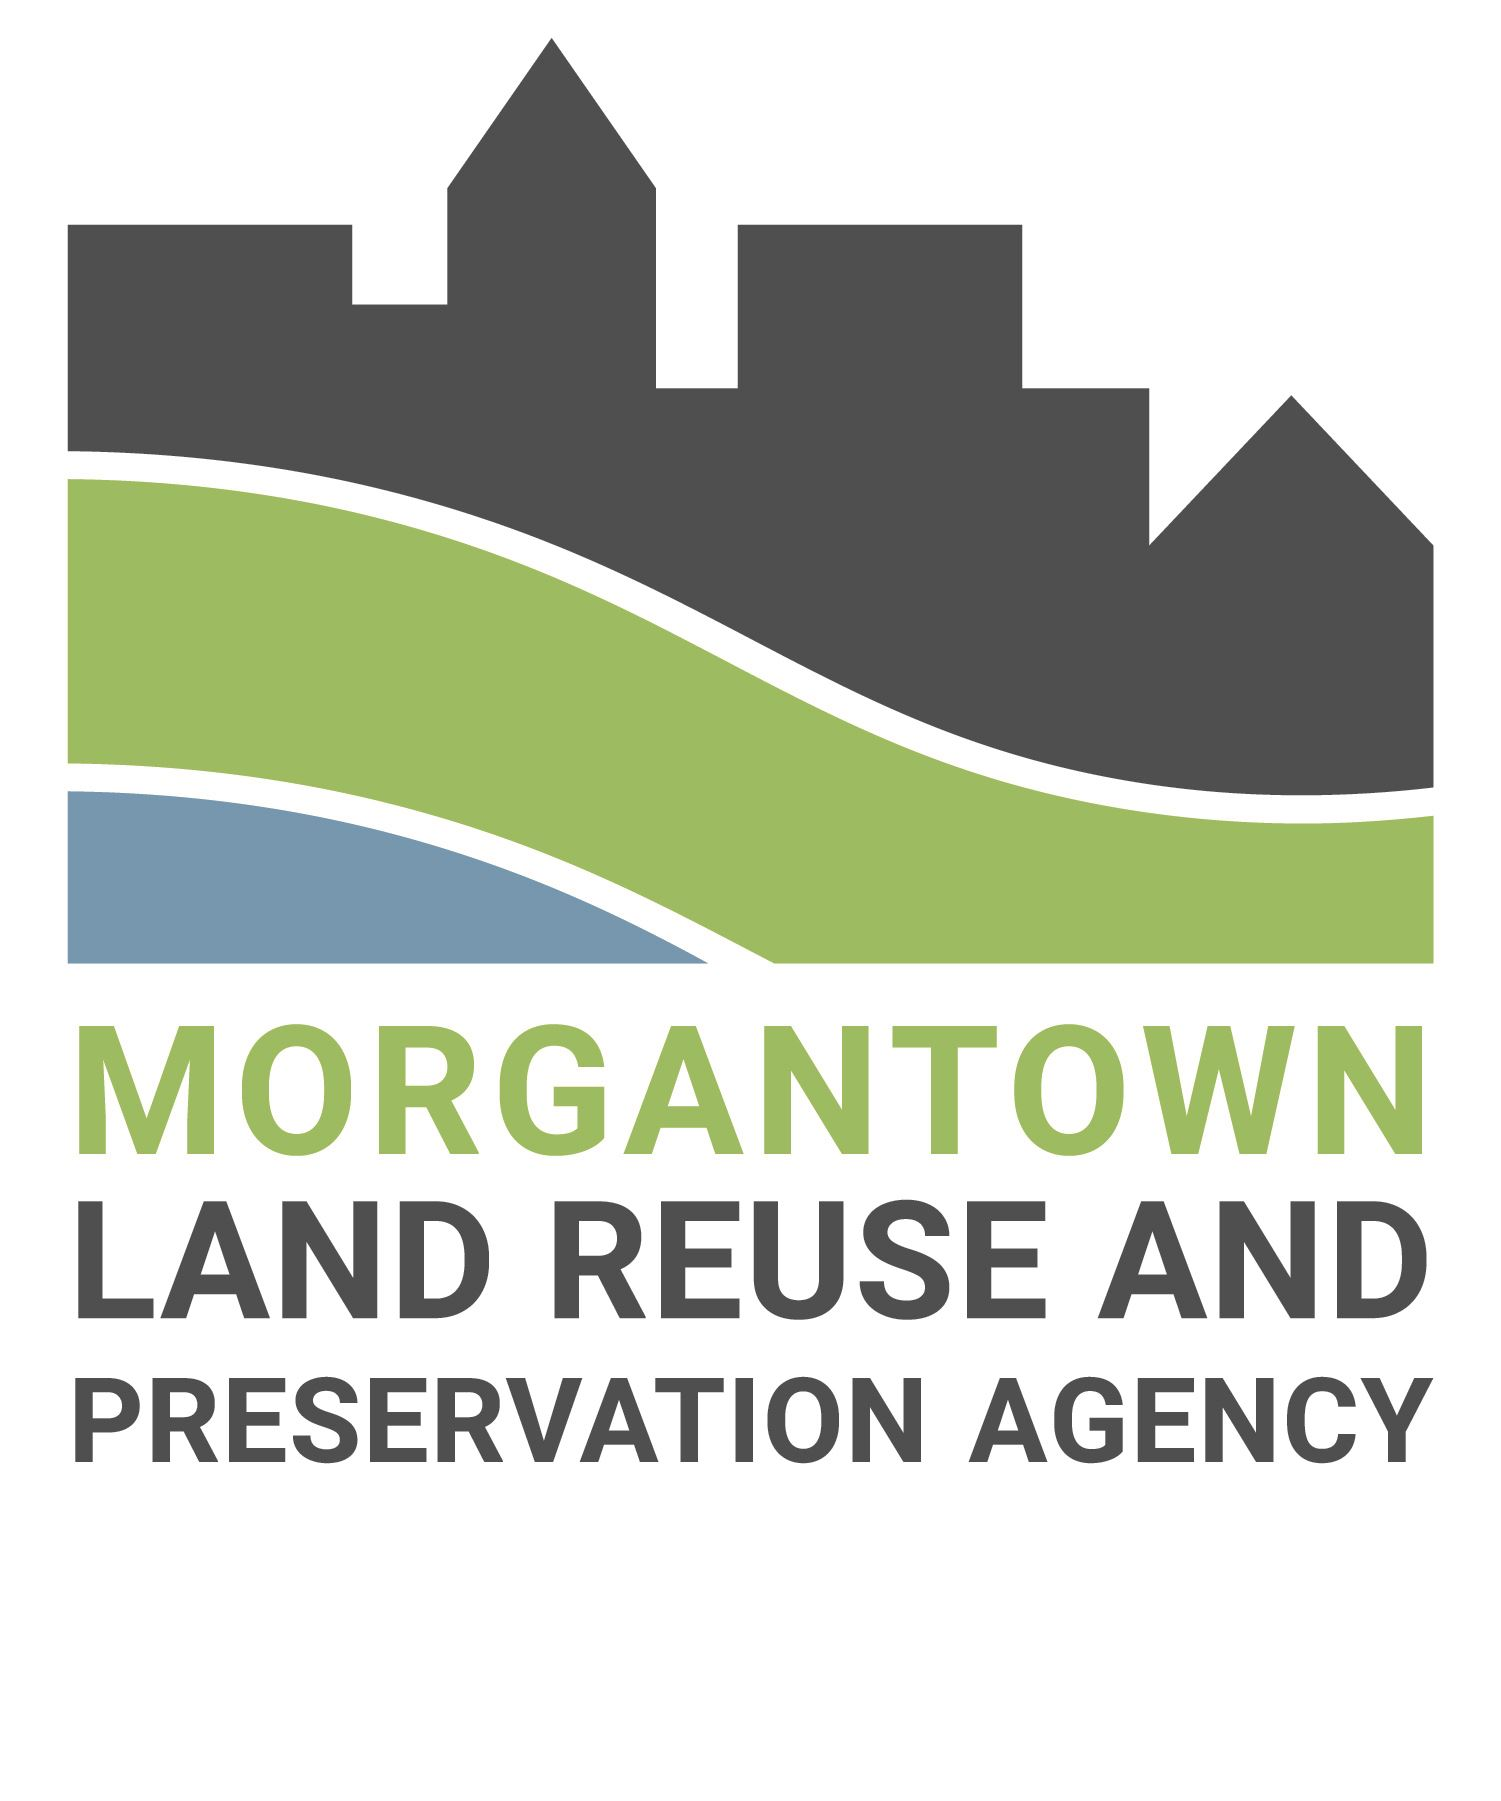 The logo of the Morgantown Land Reuse and Preservation Agency.